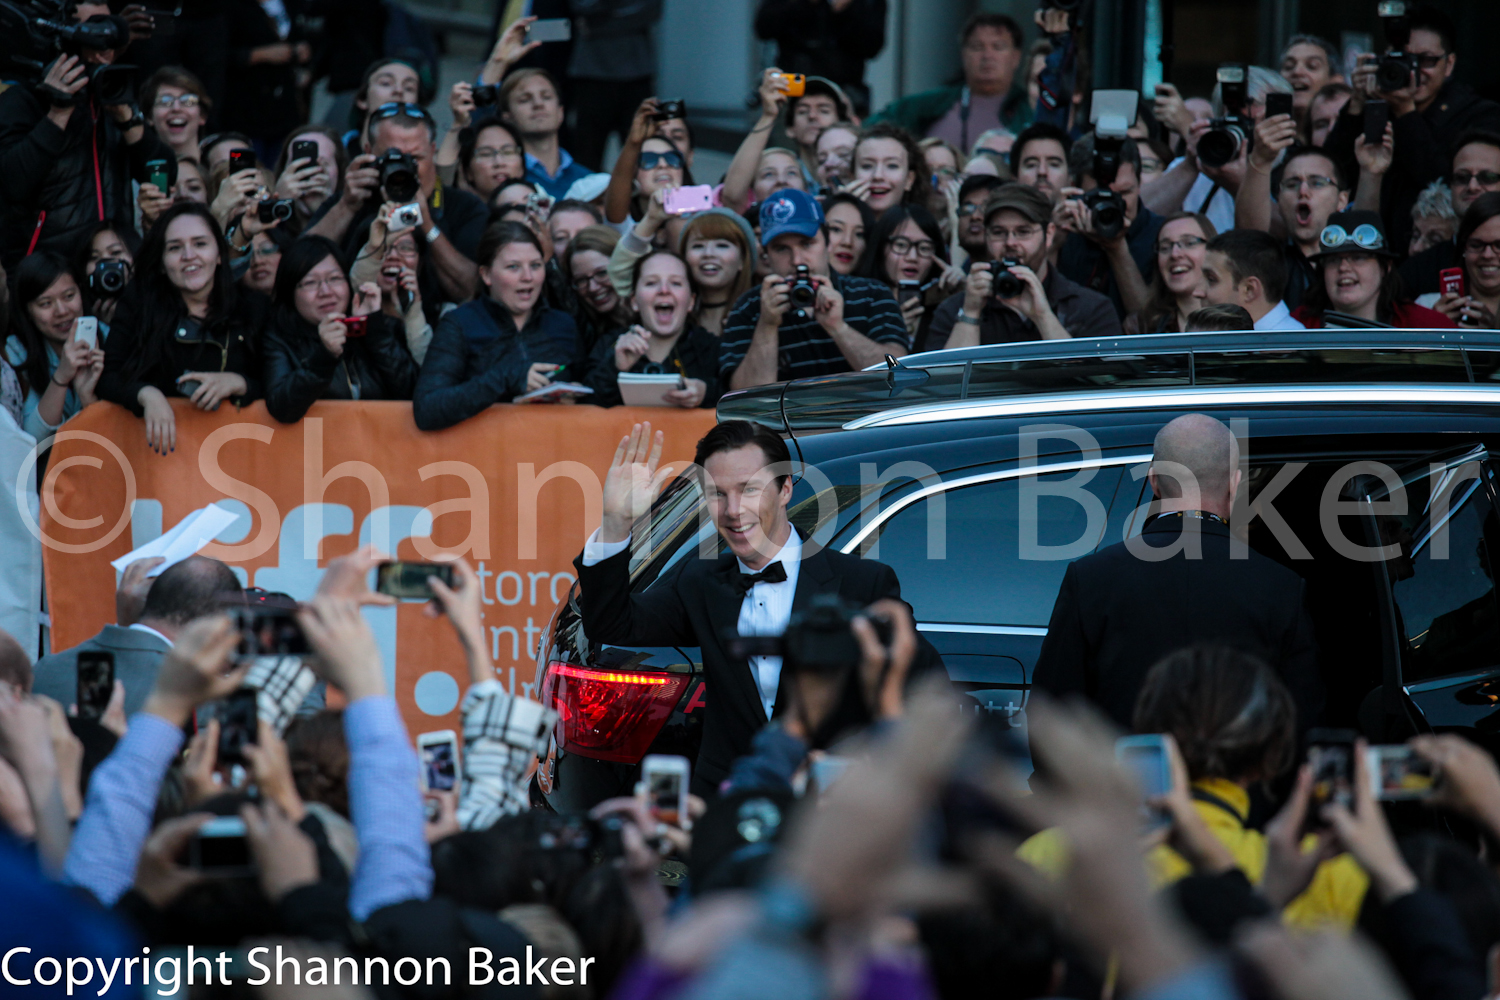 Image of crowd at Red Carpet in Toronto.